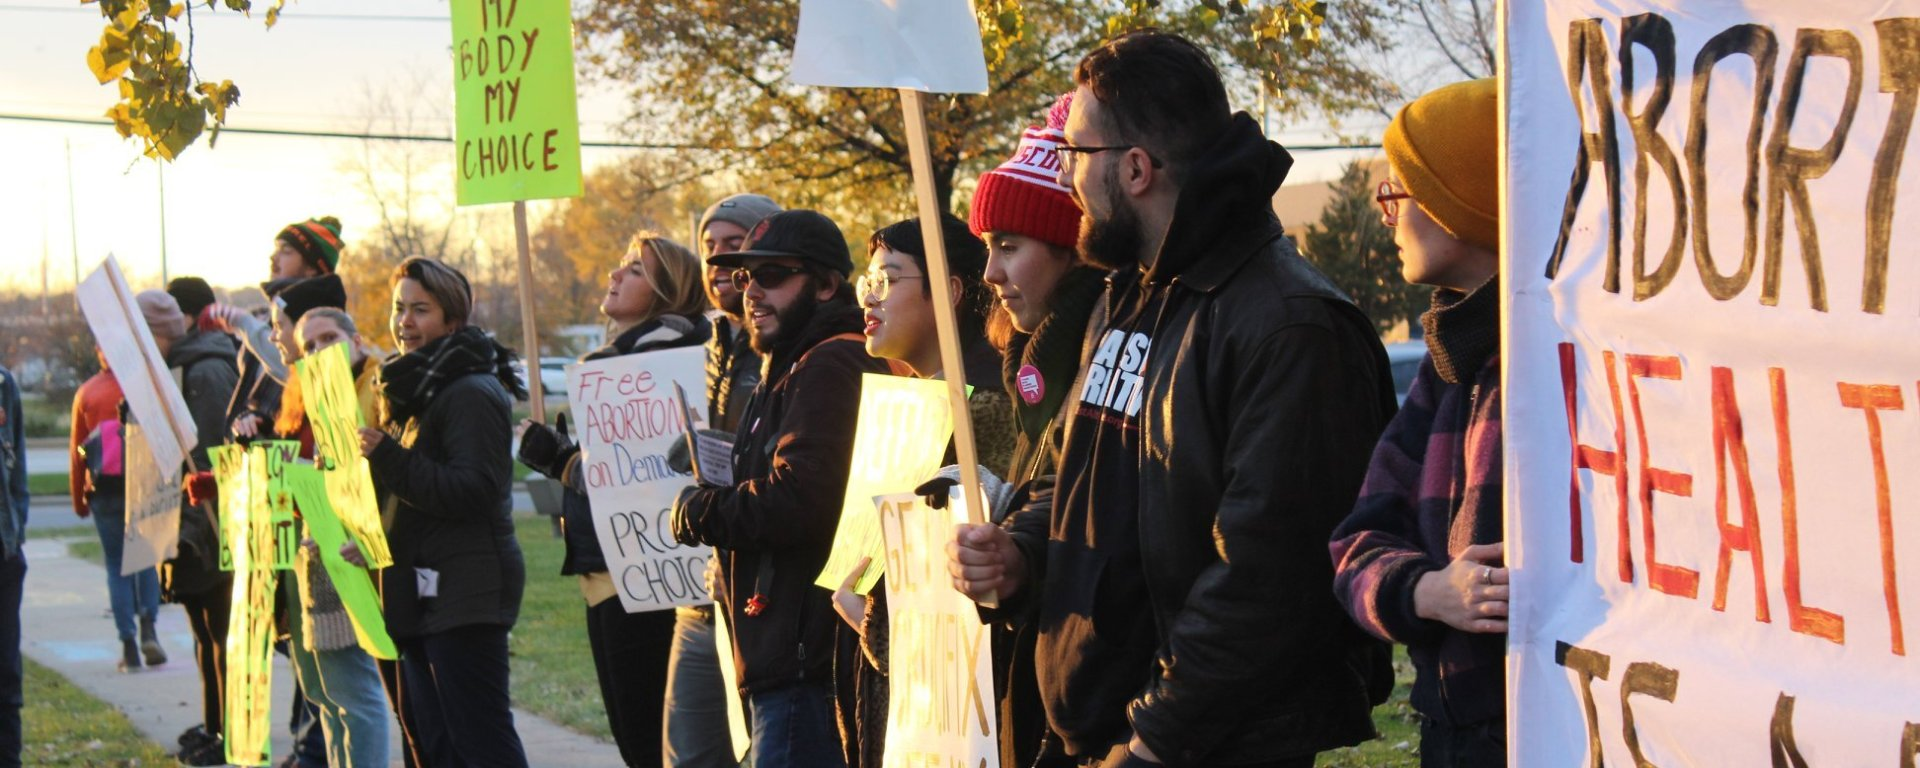 A picture of people standing in a line, holding signs in support of abortion rights, while the sun sets.